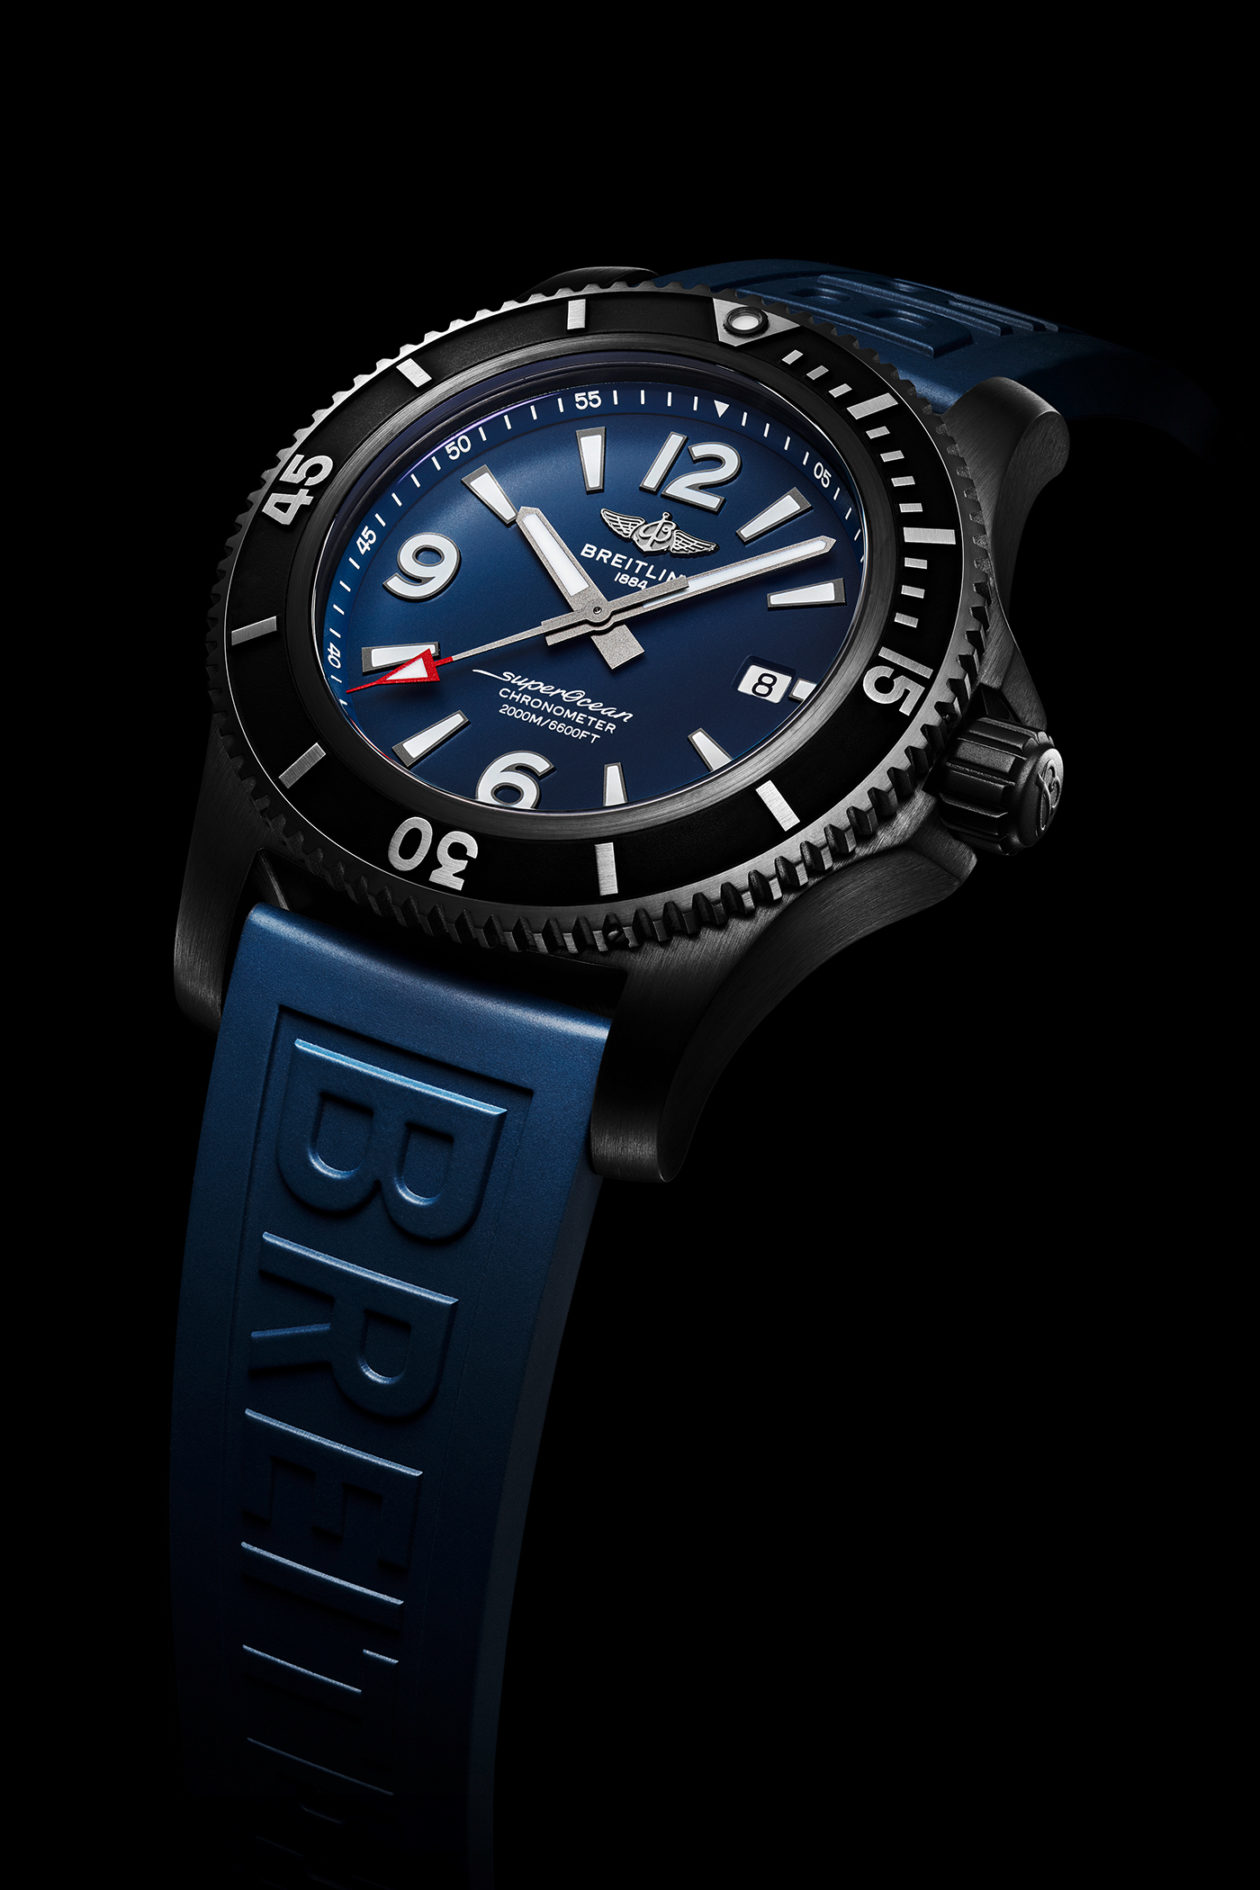 Breitling Superocean 46mm